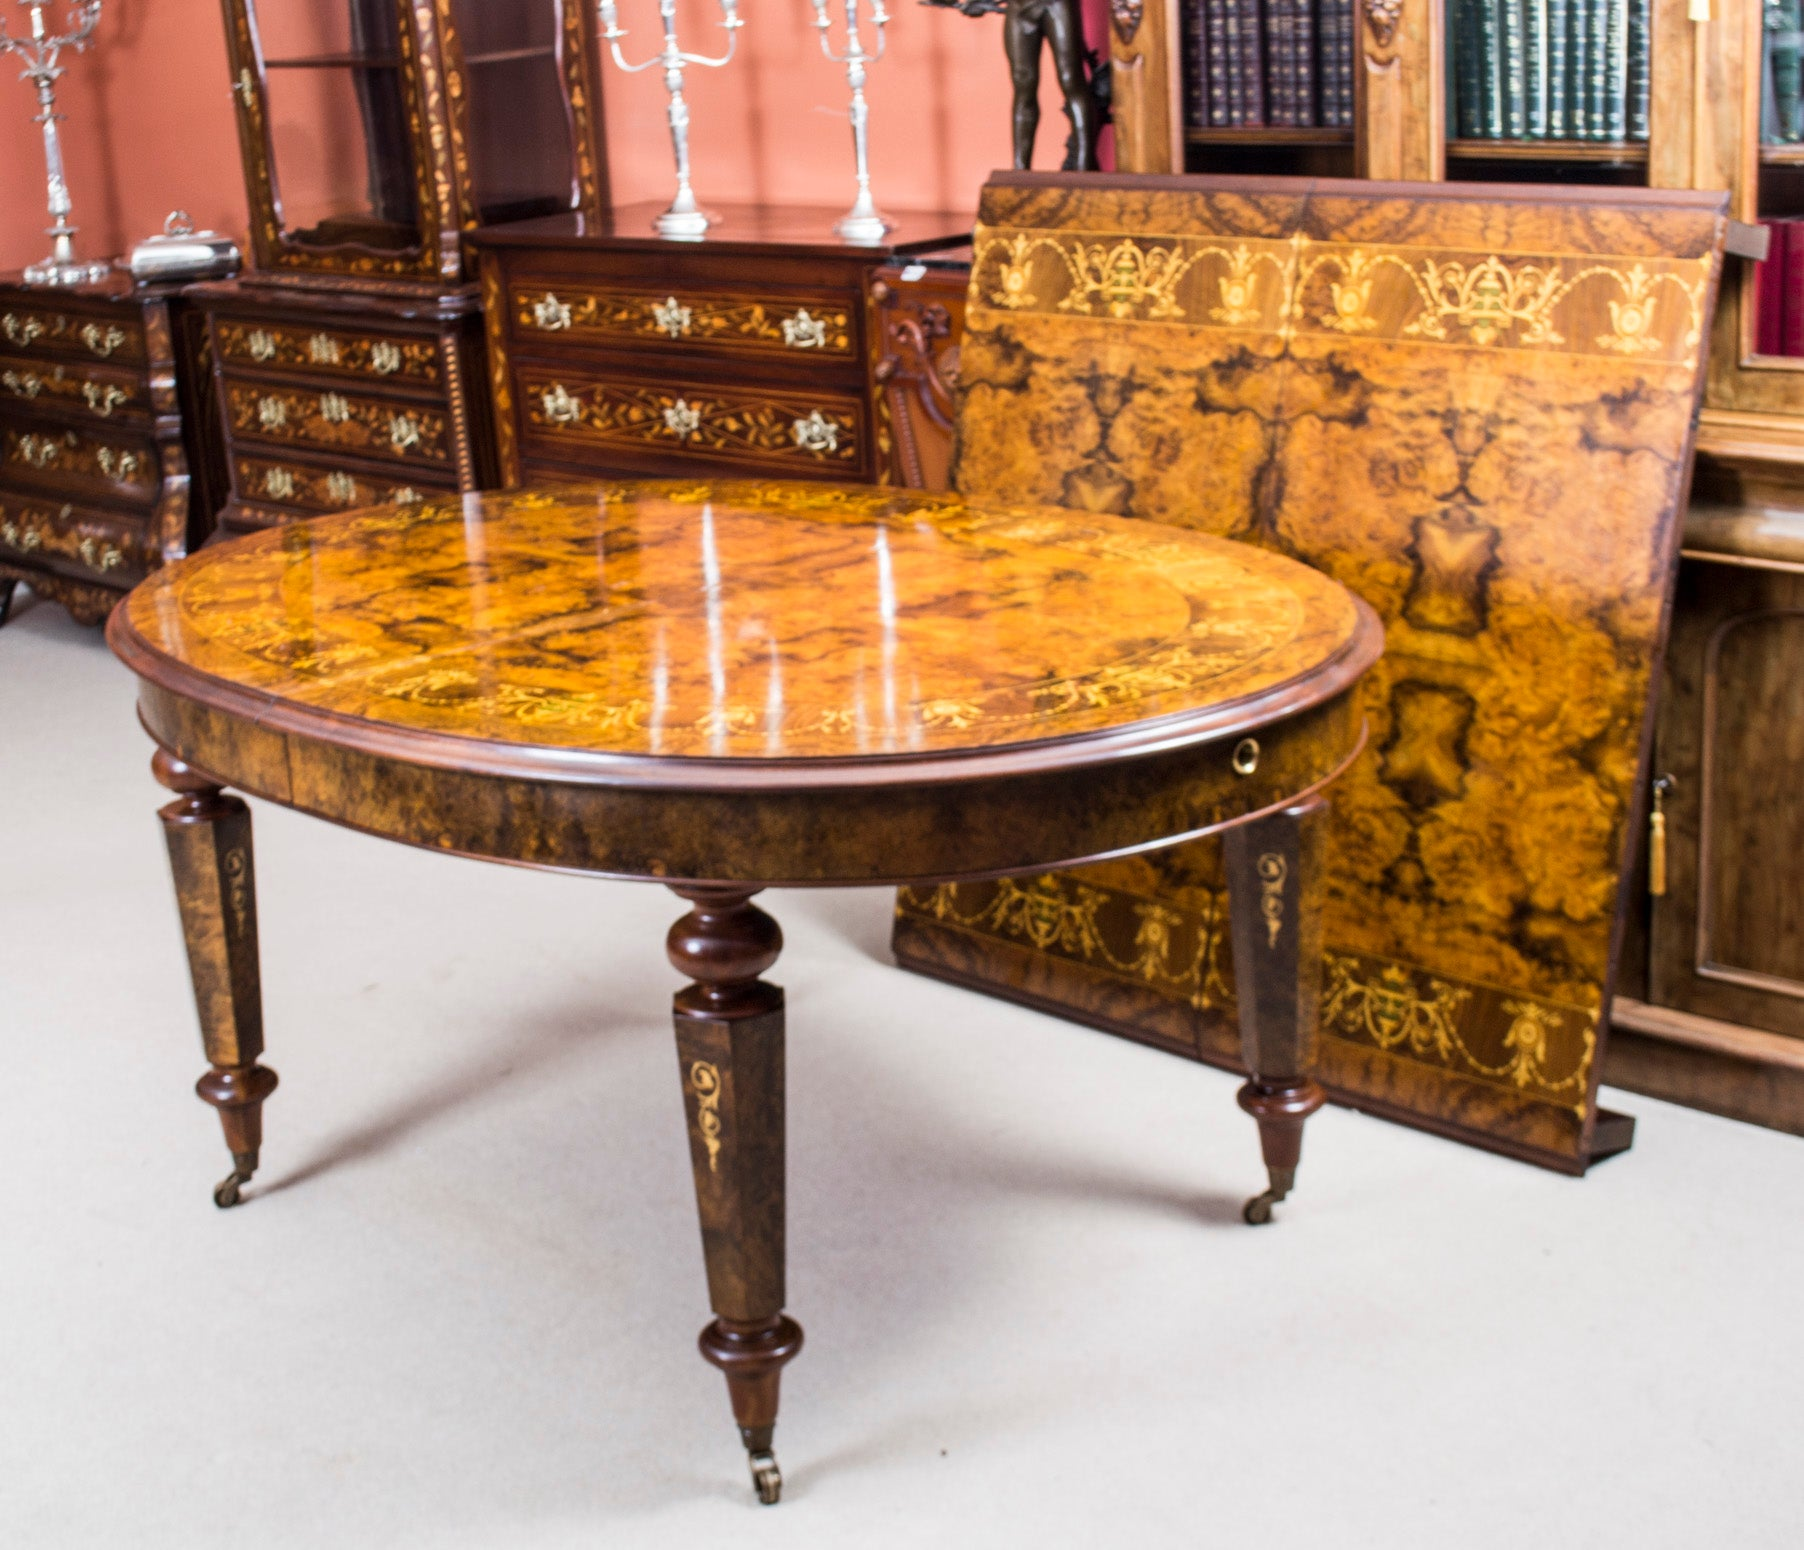 Stunning Art Deco Style Dining Center Marquetry Table Furniture